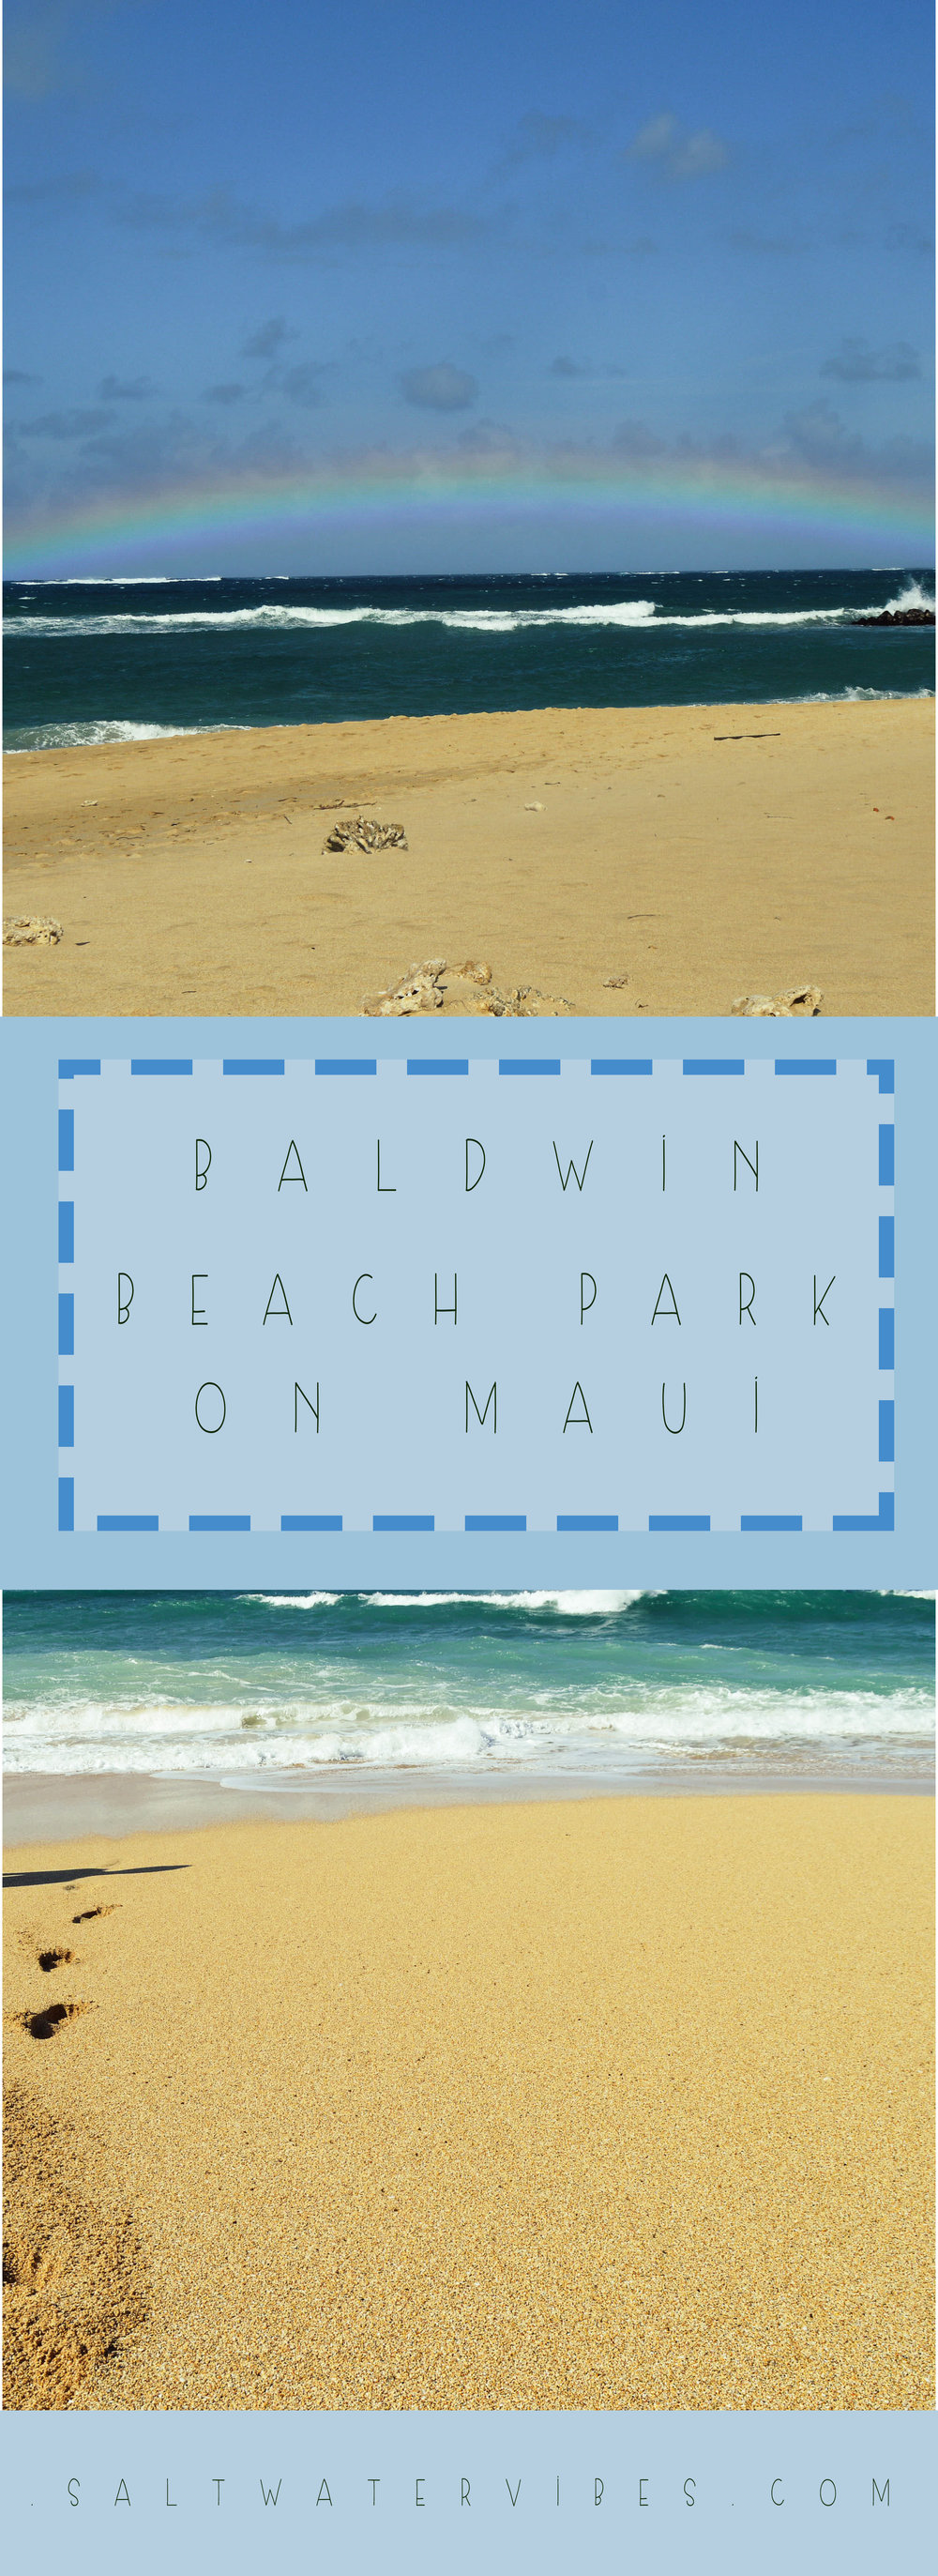 Baldwin Beach Park on Maui + SaltWaterVibes